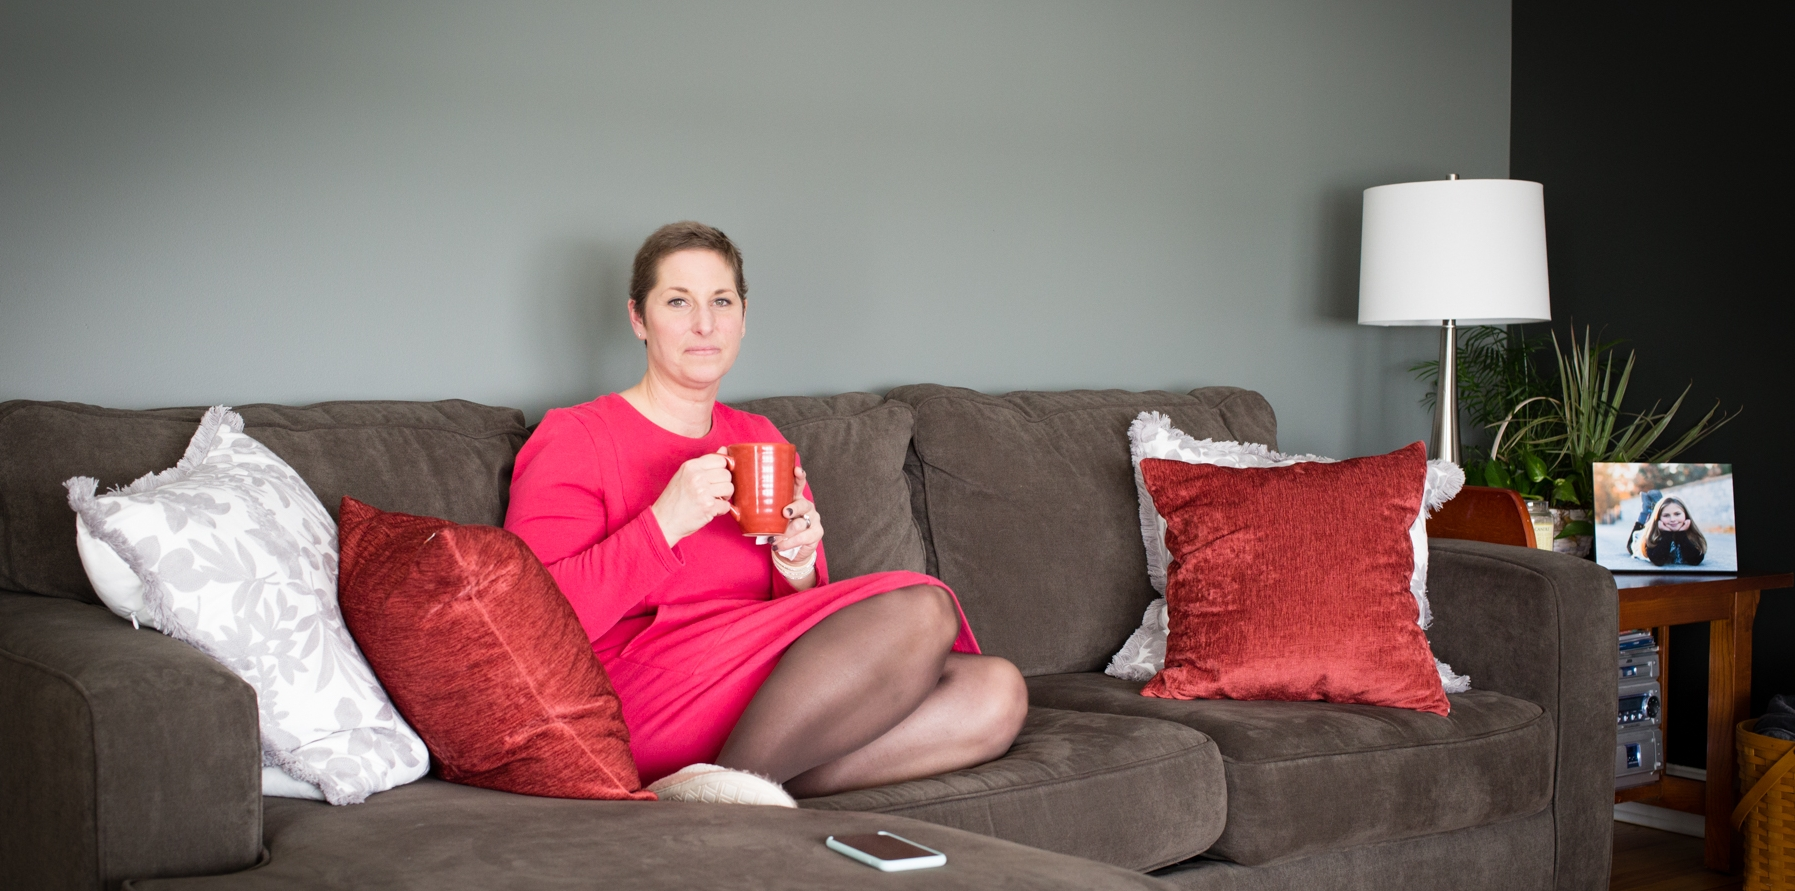 Christie Schwab, 42, at her home in Owasco, New York, enjoying a hot cup of tea. // February 5, 2018.